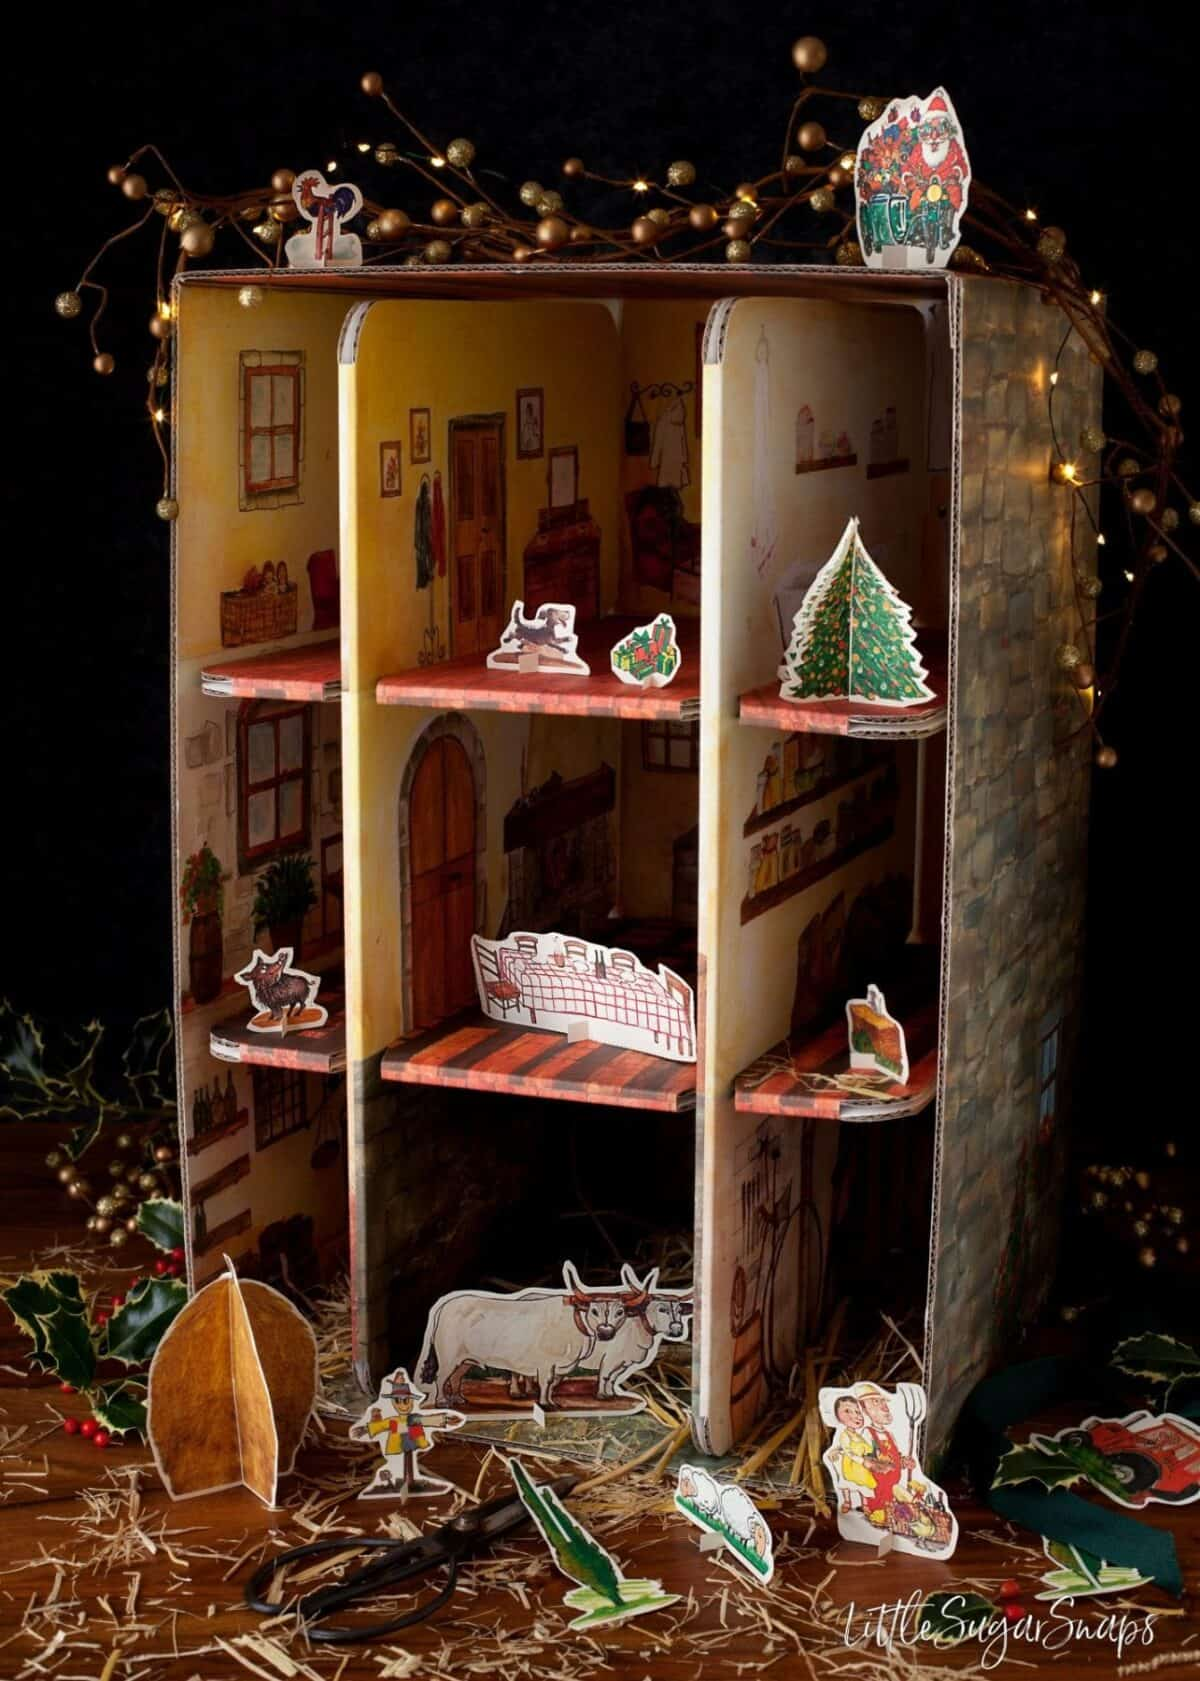 Cardboard toy farmhouse style dolls house with cut out animal figures